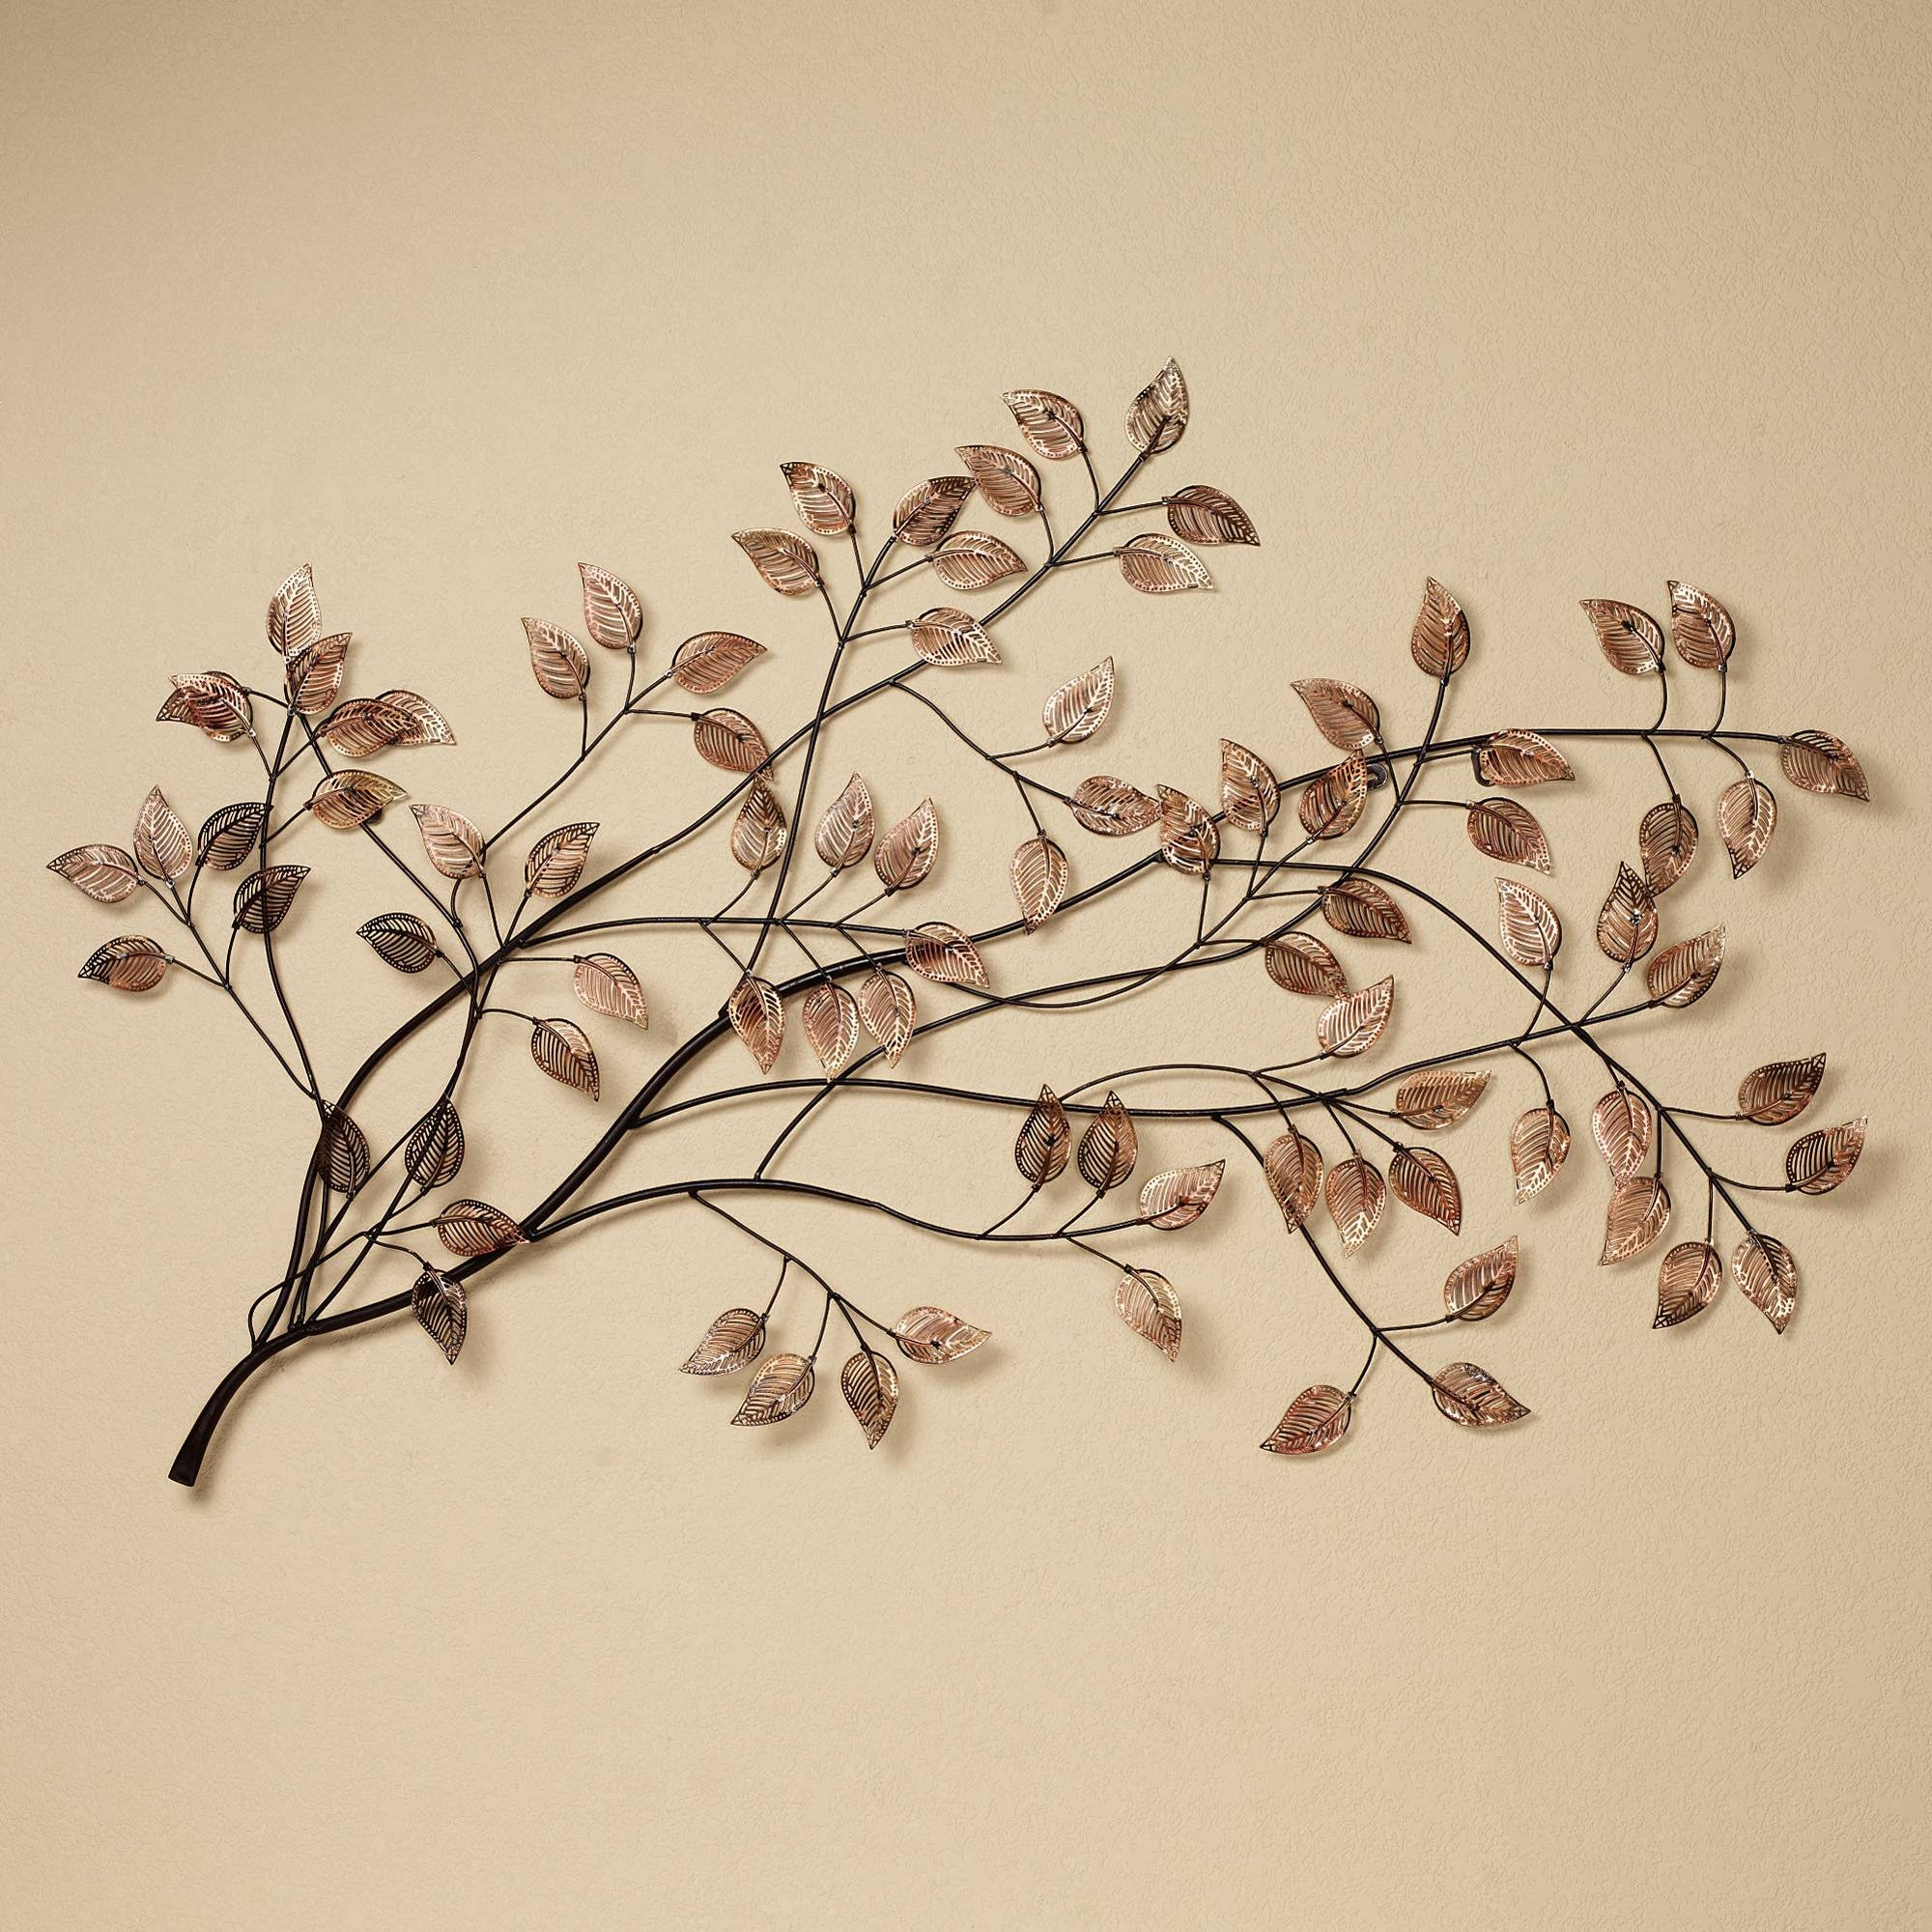 Wall Ideas: Tree Metal Wall Art Images. Design Decor (View 20 of 20)